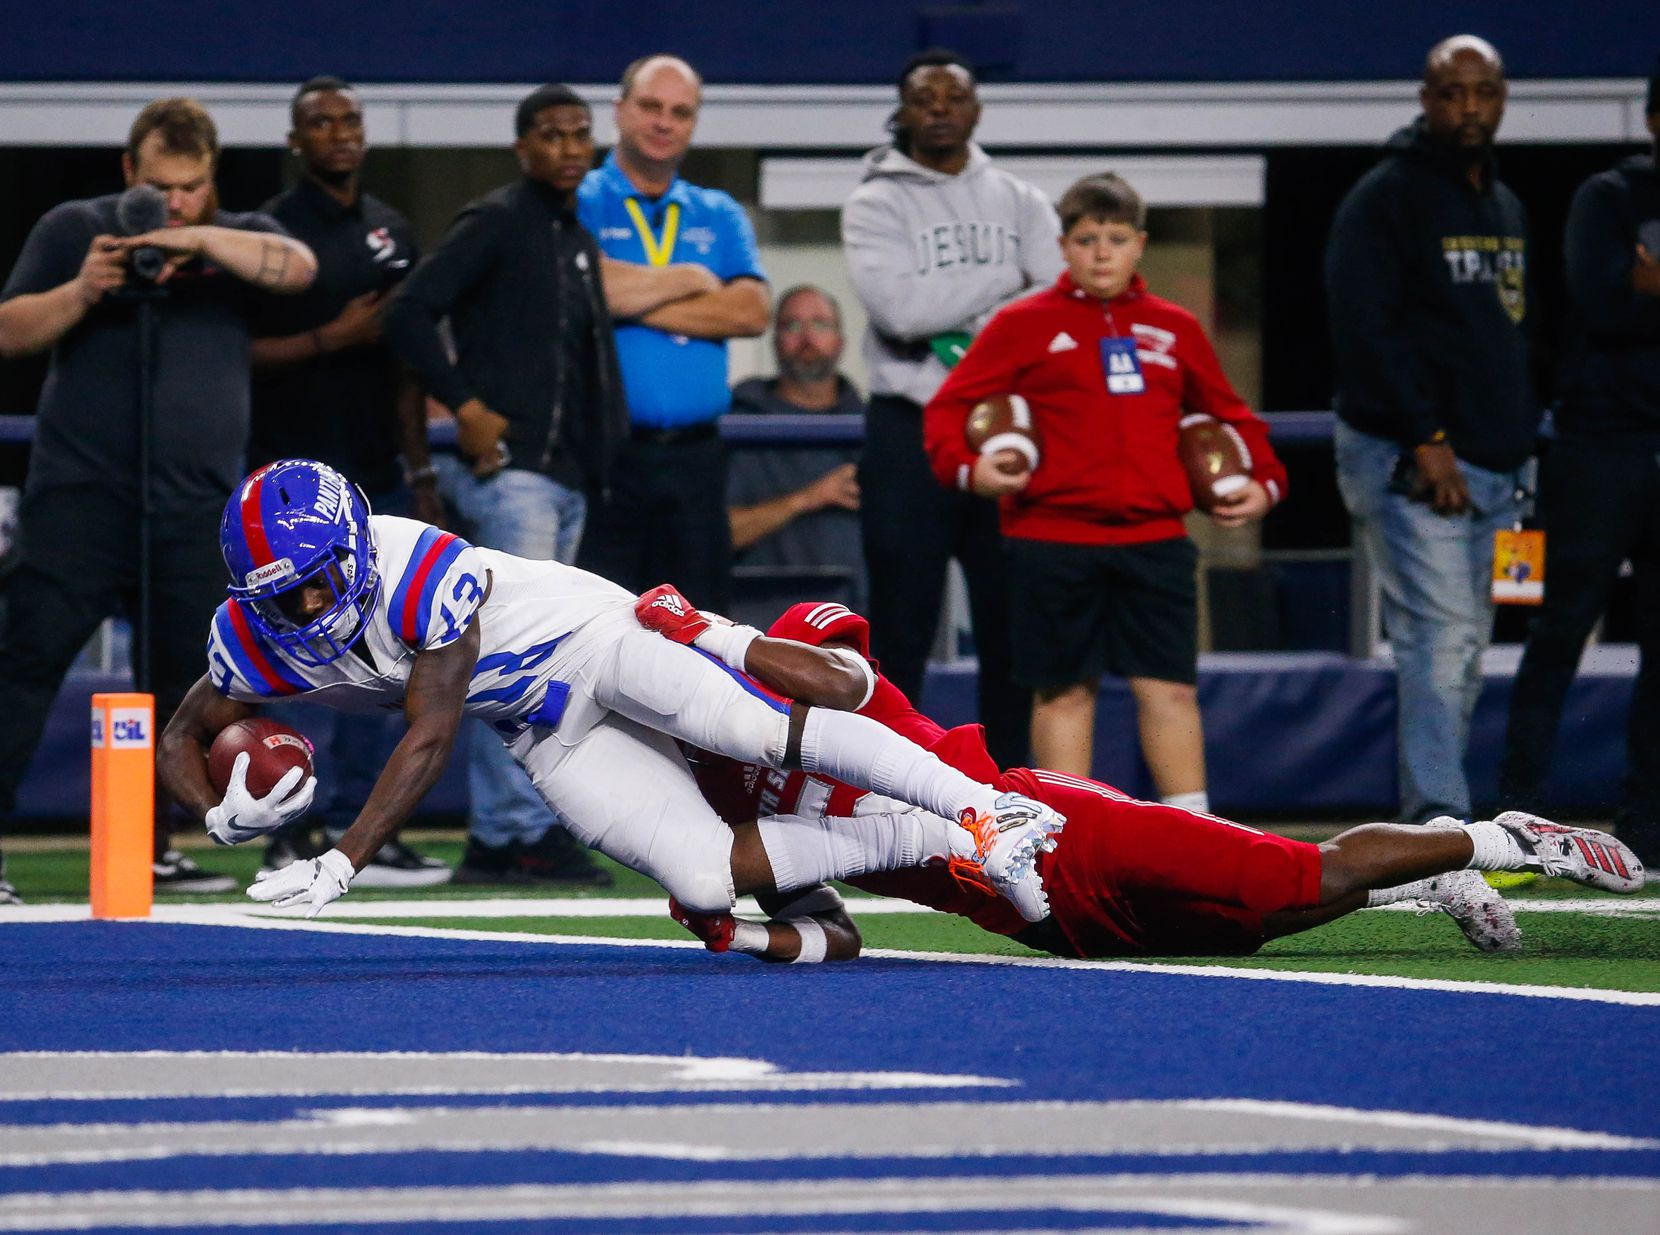 Duncanville's Roderick Daniels (13) scores a touchdown while being tackled by North Shore's Upton Stout (5) in the second quarter of a Class 6A Division I state championship game at the AT&T Stadium in Arlington, on Saturday, December 21, 2019. The game is tied 17-17 at halftime.